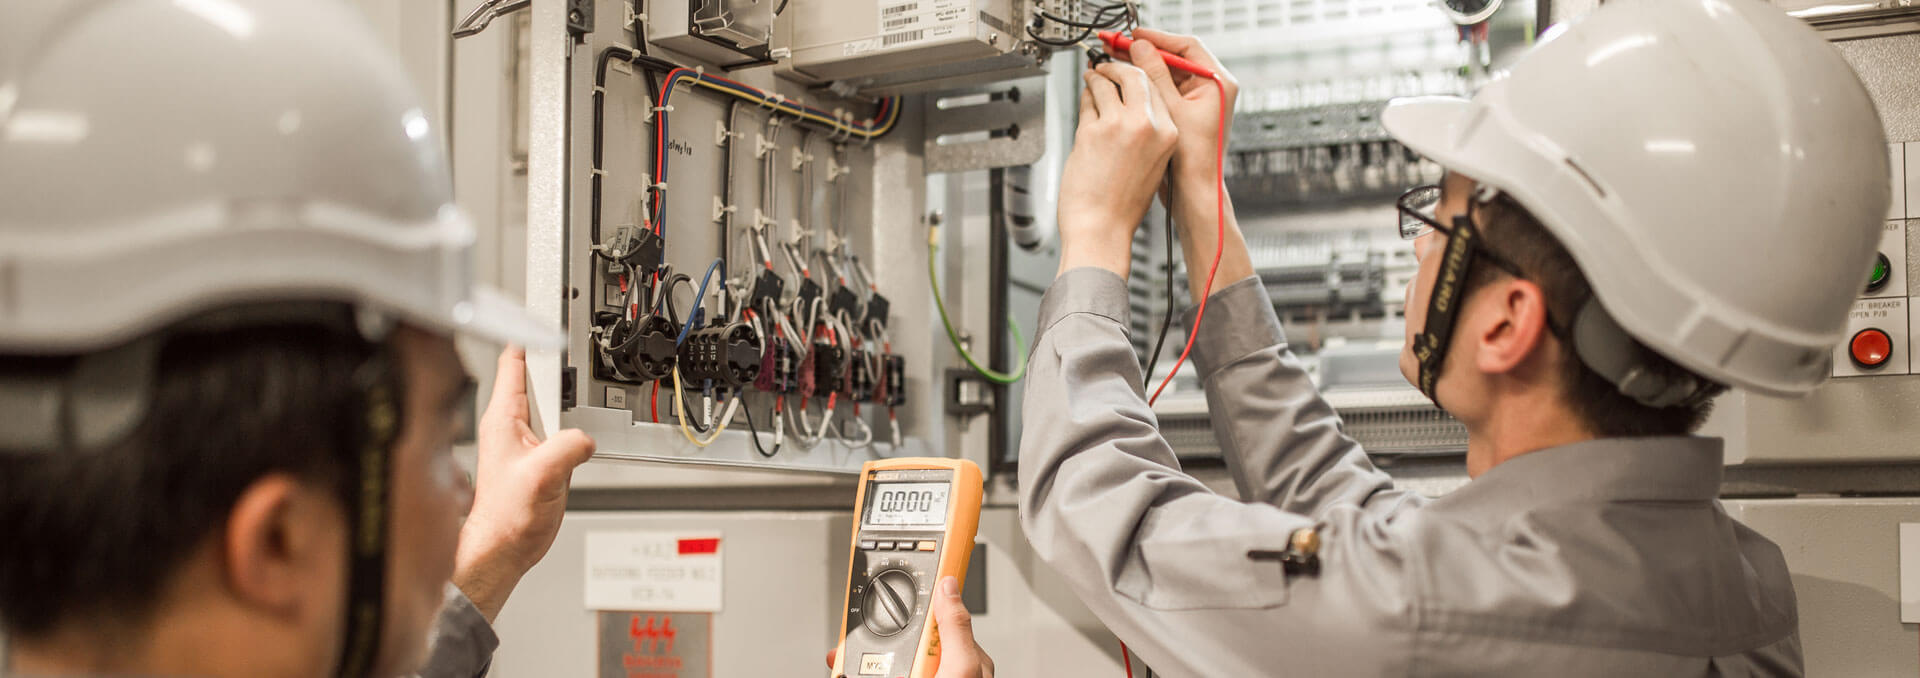 Relentless pursuit for Electrical SAFETY